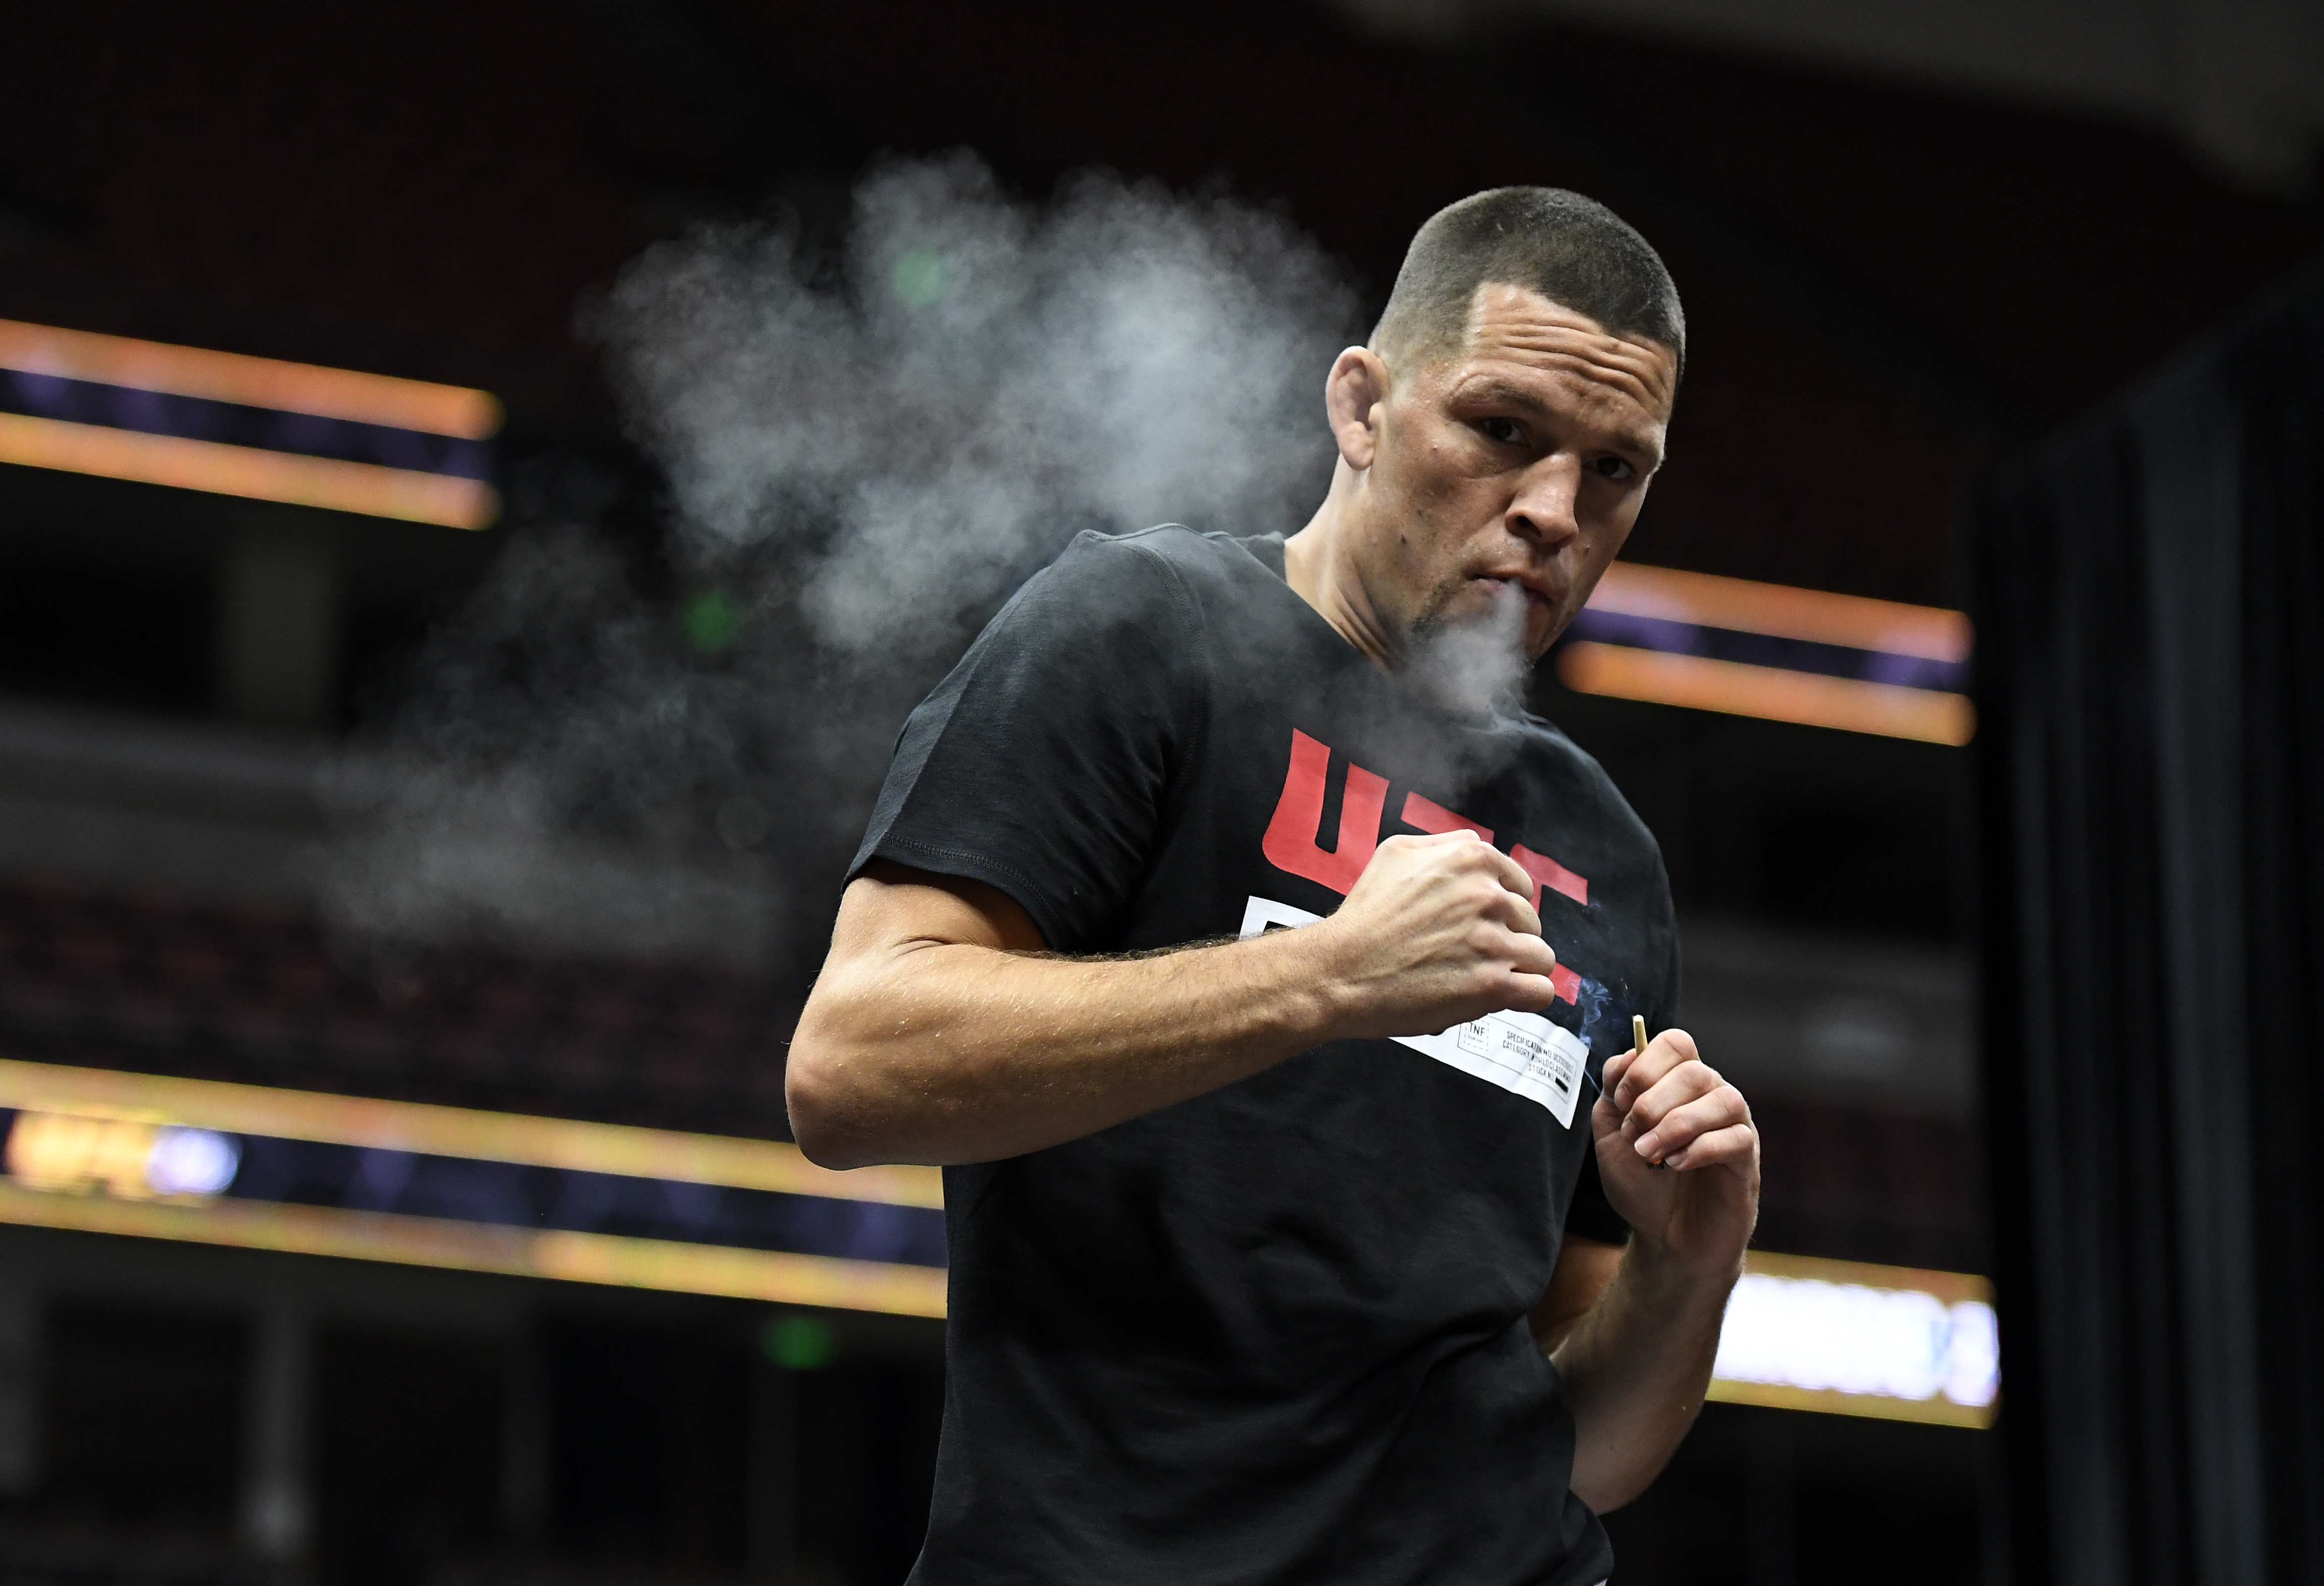 Diaz makes his octagon return on Saturday facing old rival Anthony Pettis in his home of California